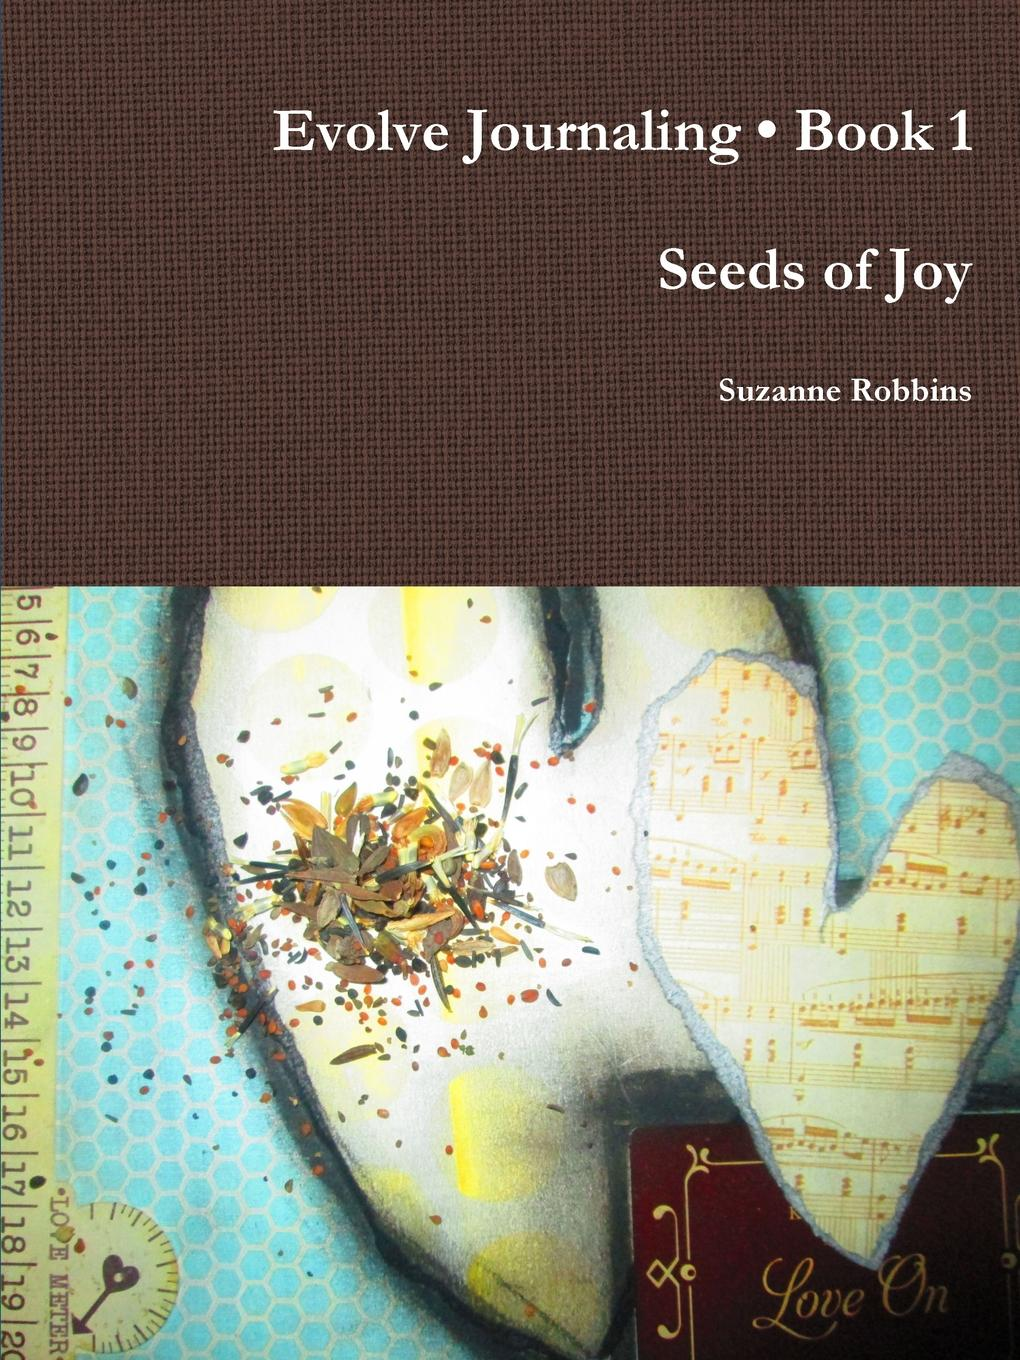 Suzanne Robbins Evolve Journaling Book 1, Seeds of Joy ten seeds